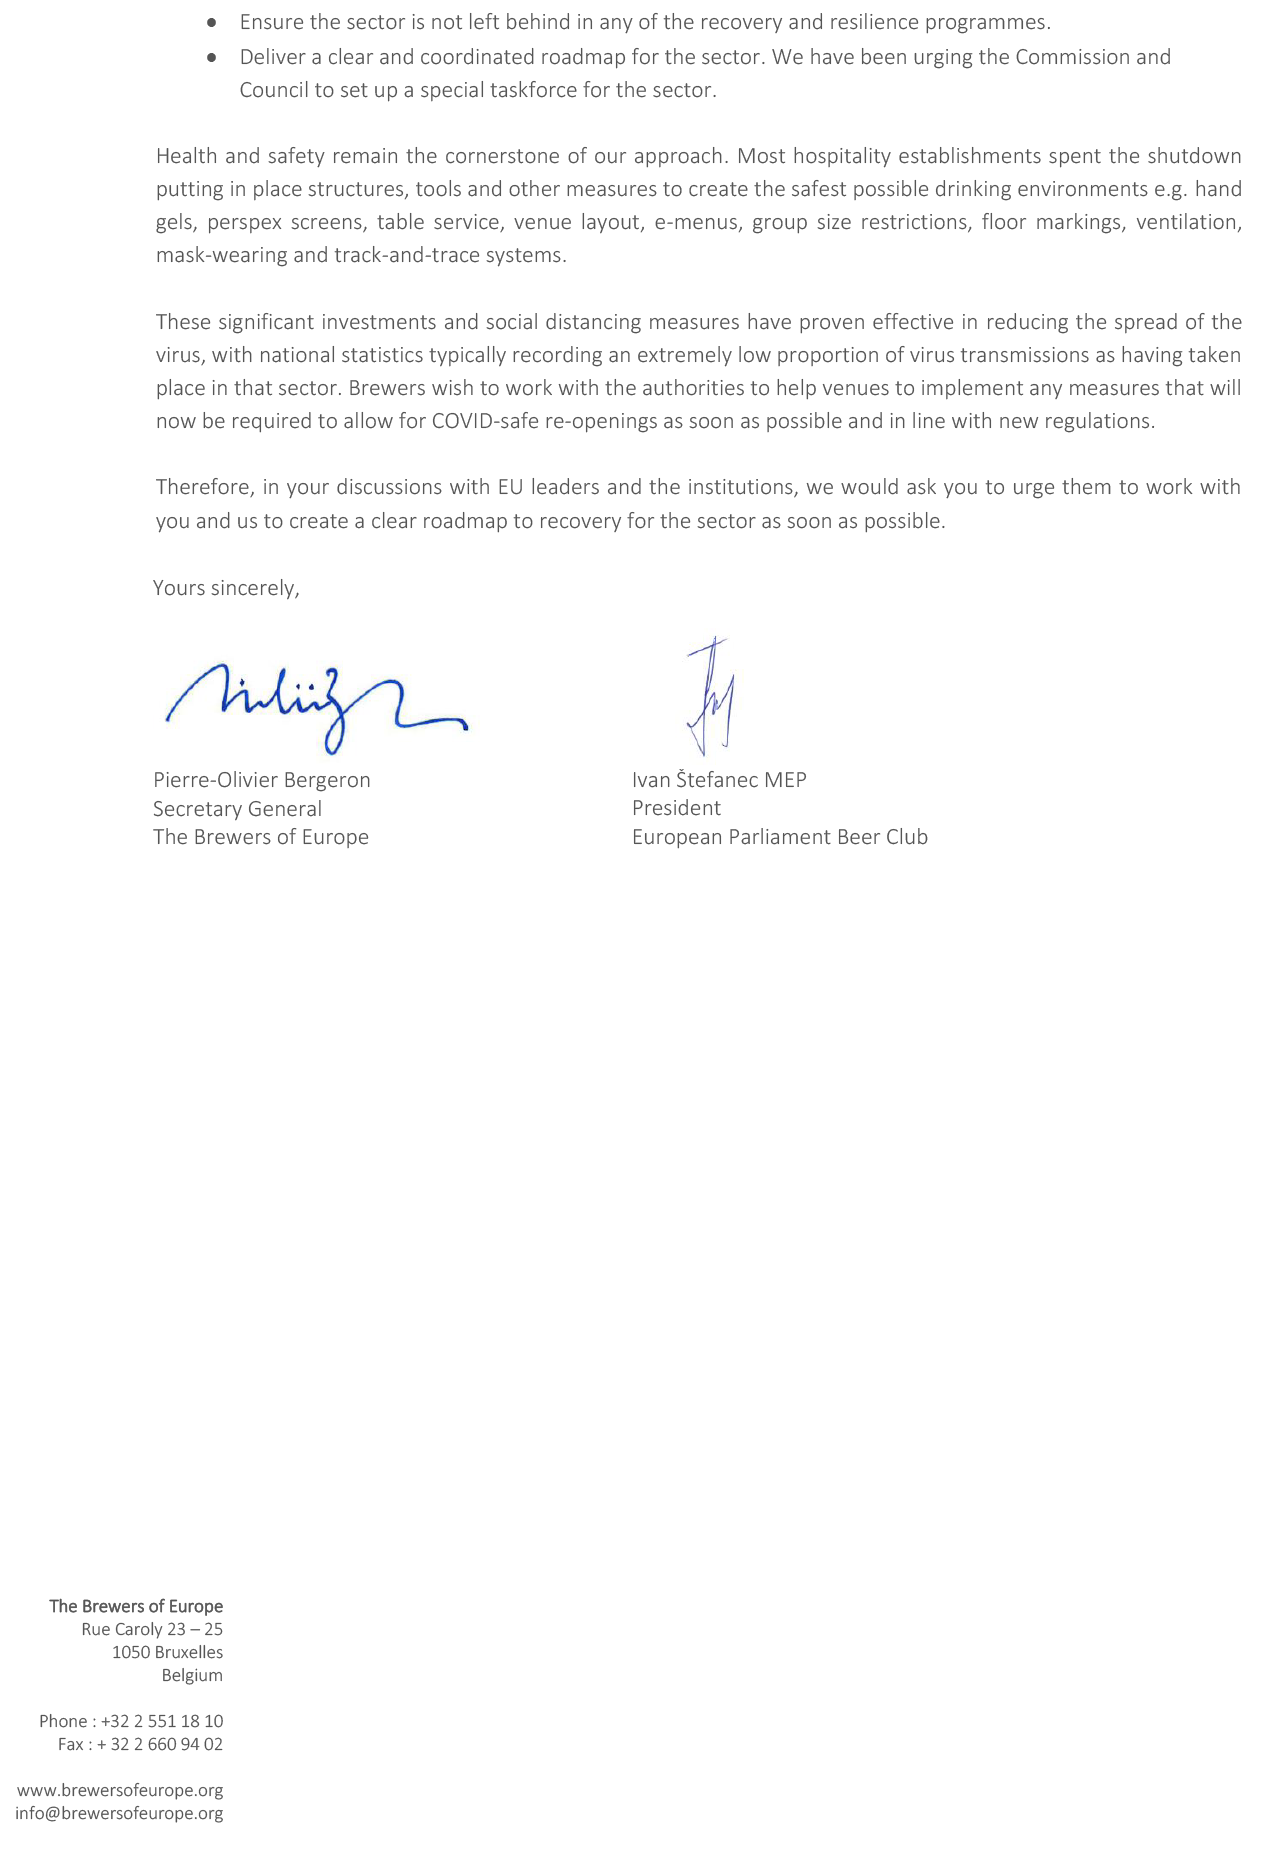 Letter to social partners to urge EU leaders to agree a clear roadmap to recovery for the brewing & hospitality sector - page 2